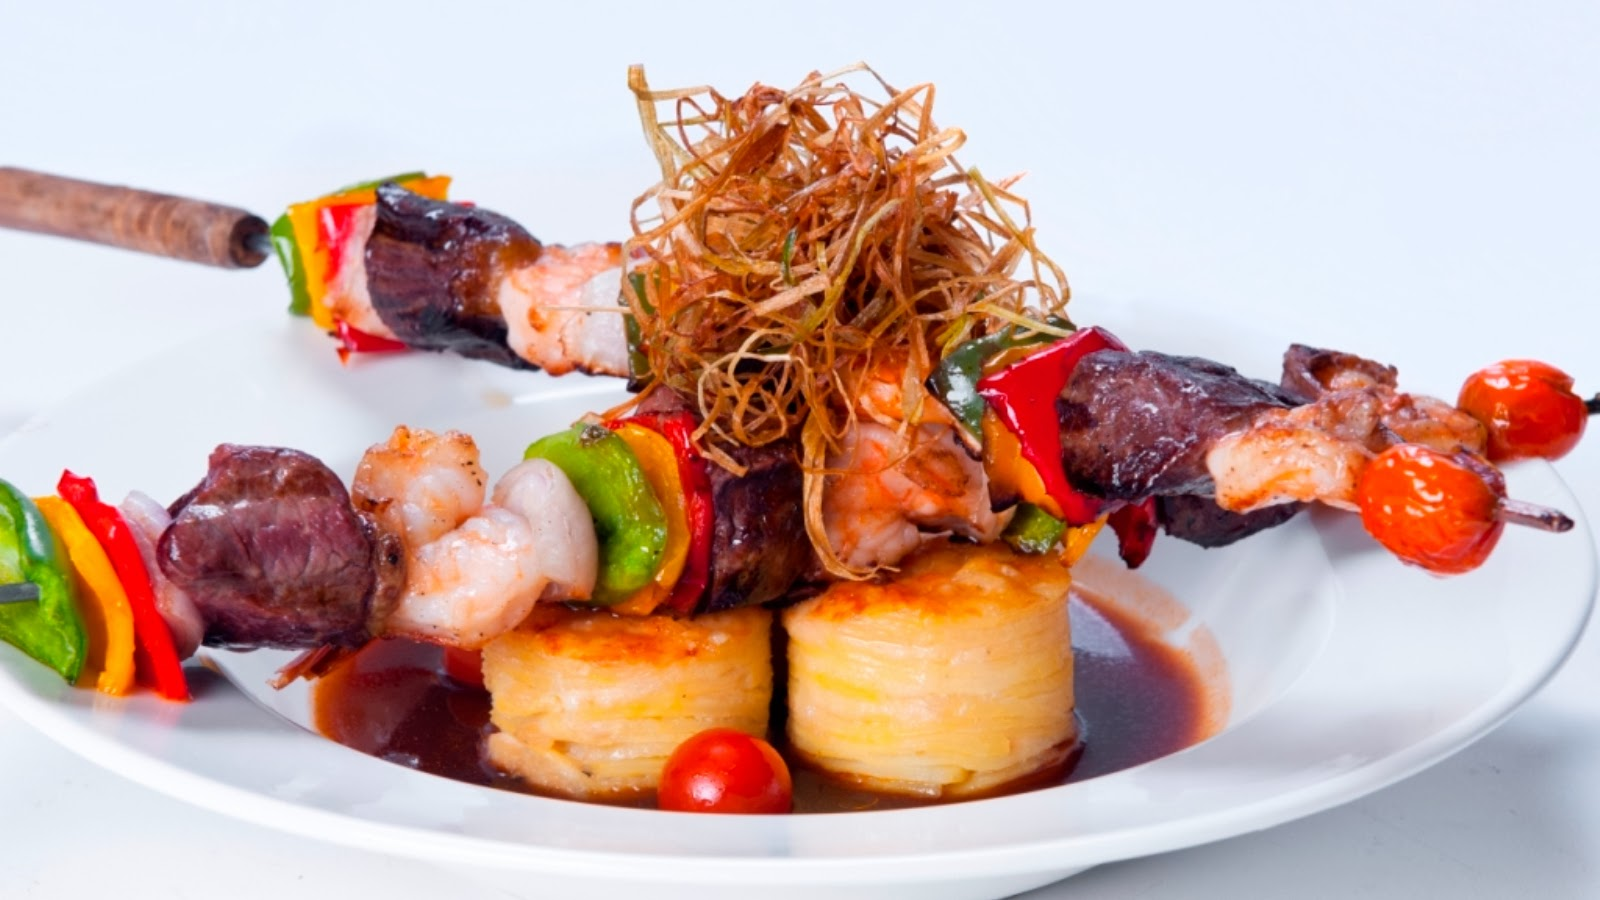 Picante's food is designed to reflect a wide range of world flavours with influences from Africa, India and the Far East